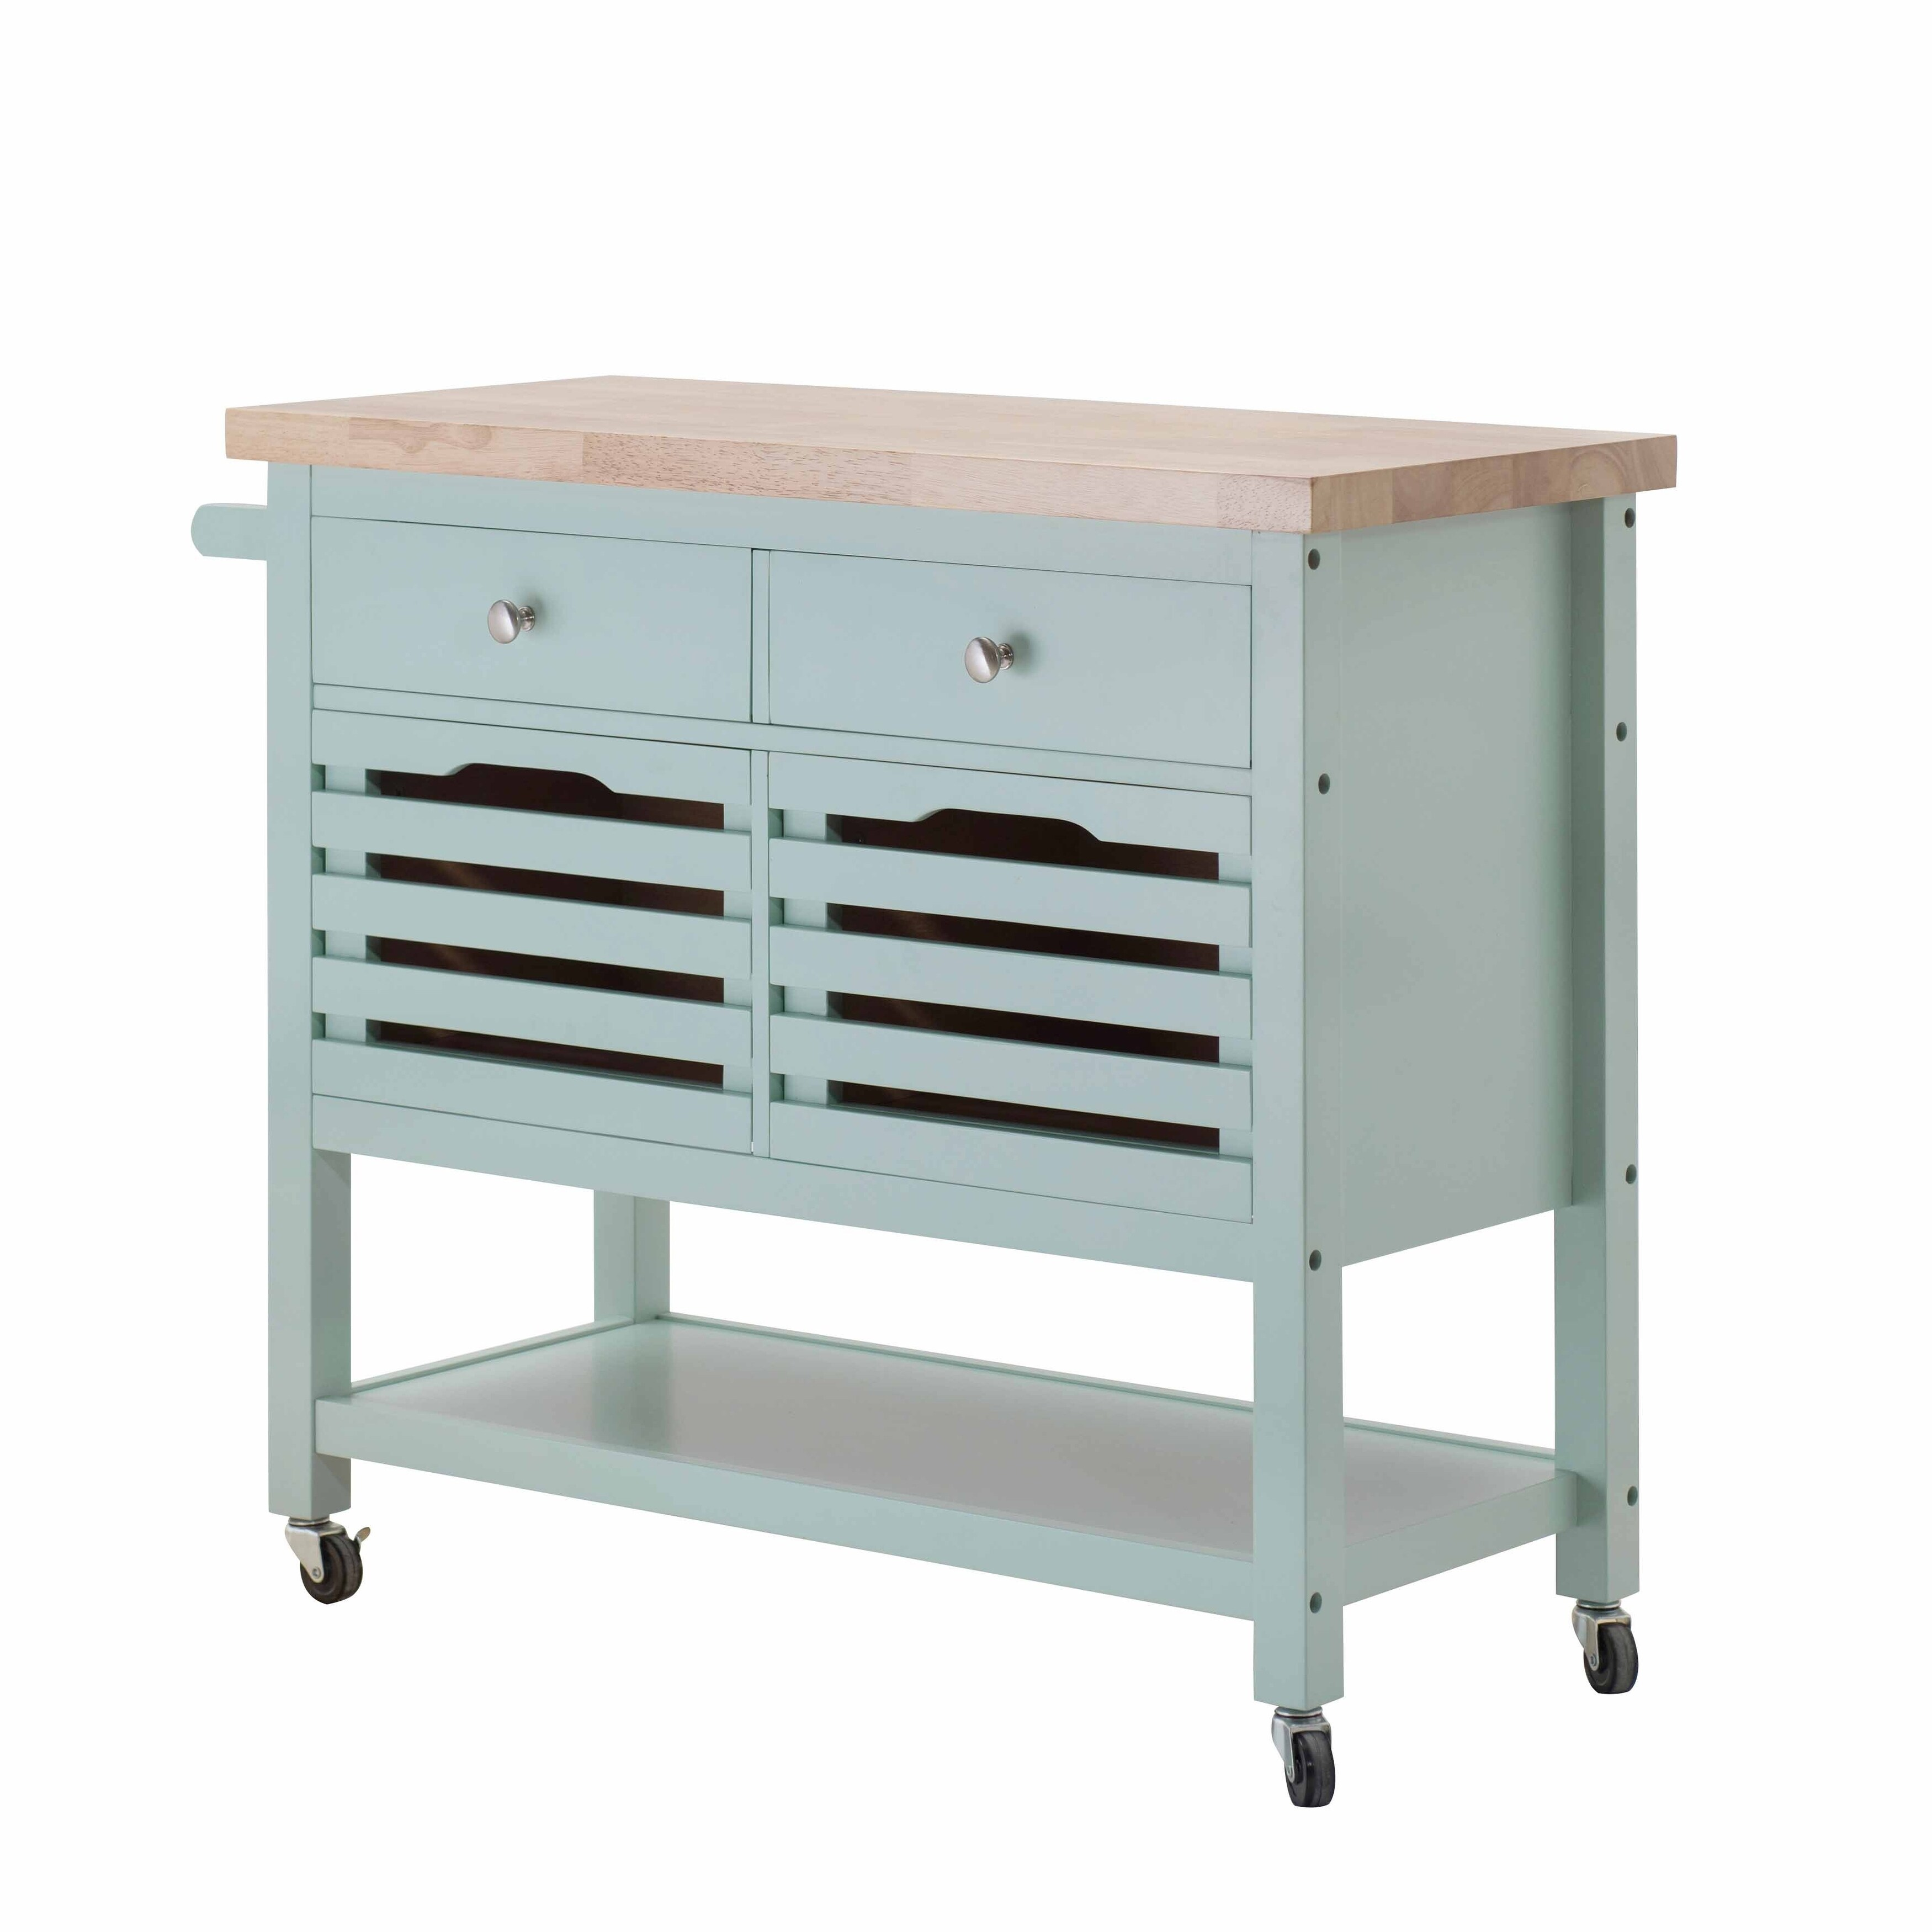 SJ Collection New Jaden Blue Wood Kitchen Cart - Free Shipping Today ...